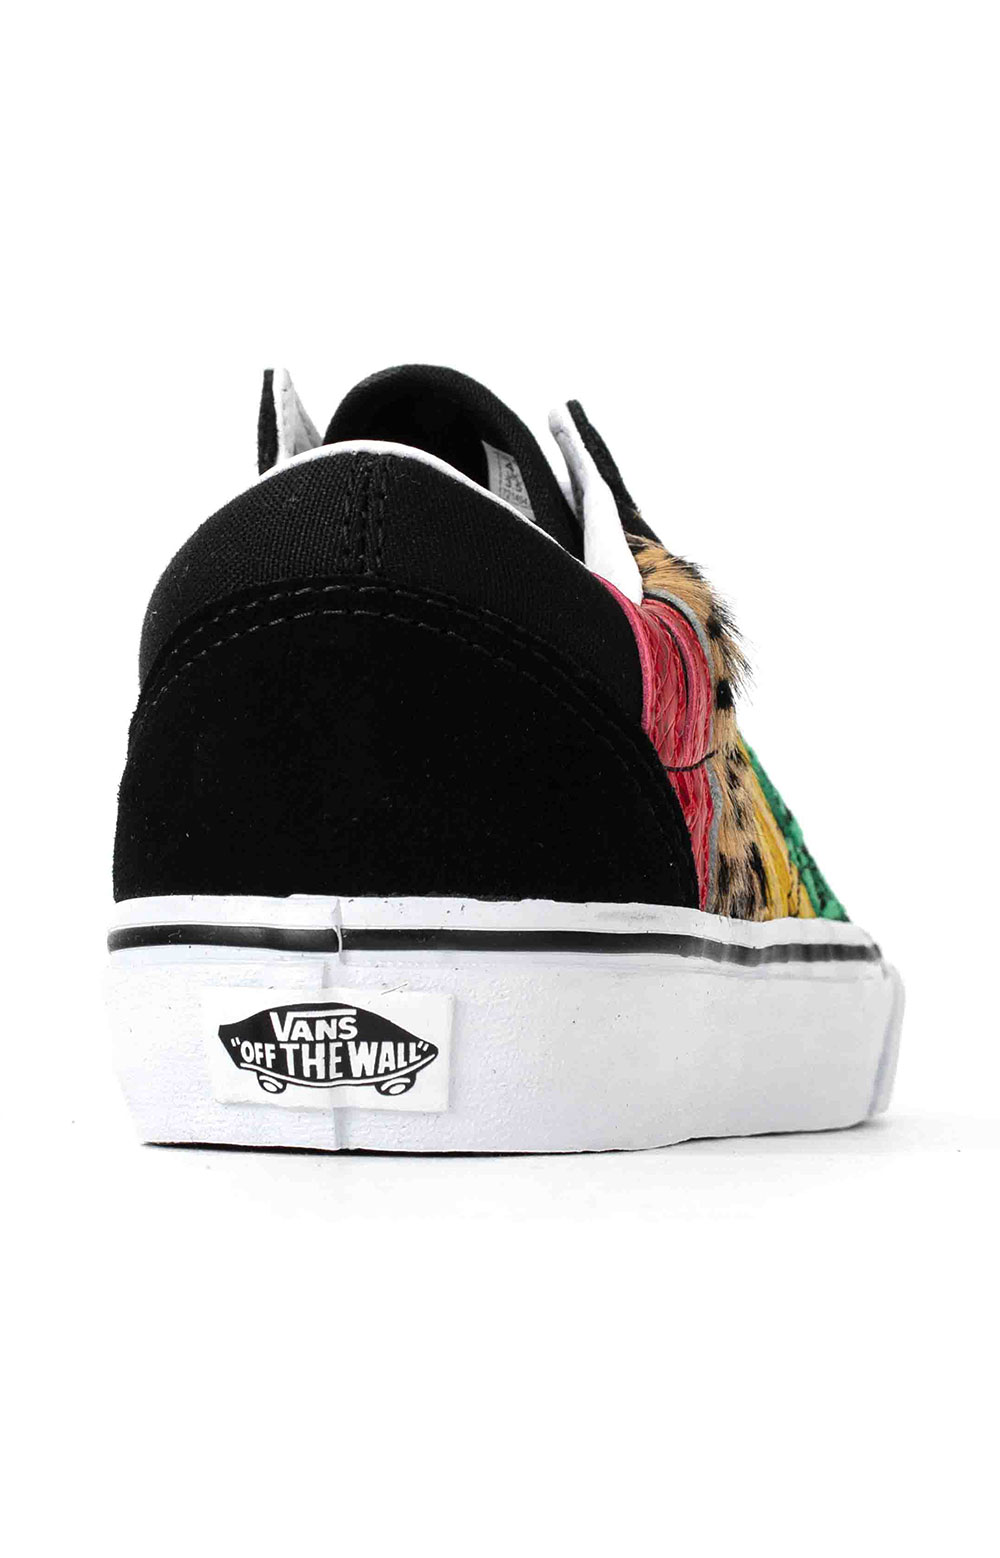 (U3BXF1) Multi Animal Old Skool Shoes - Rasta 5